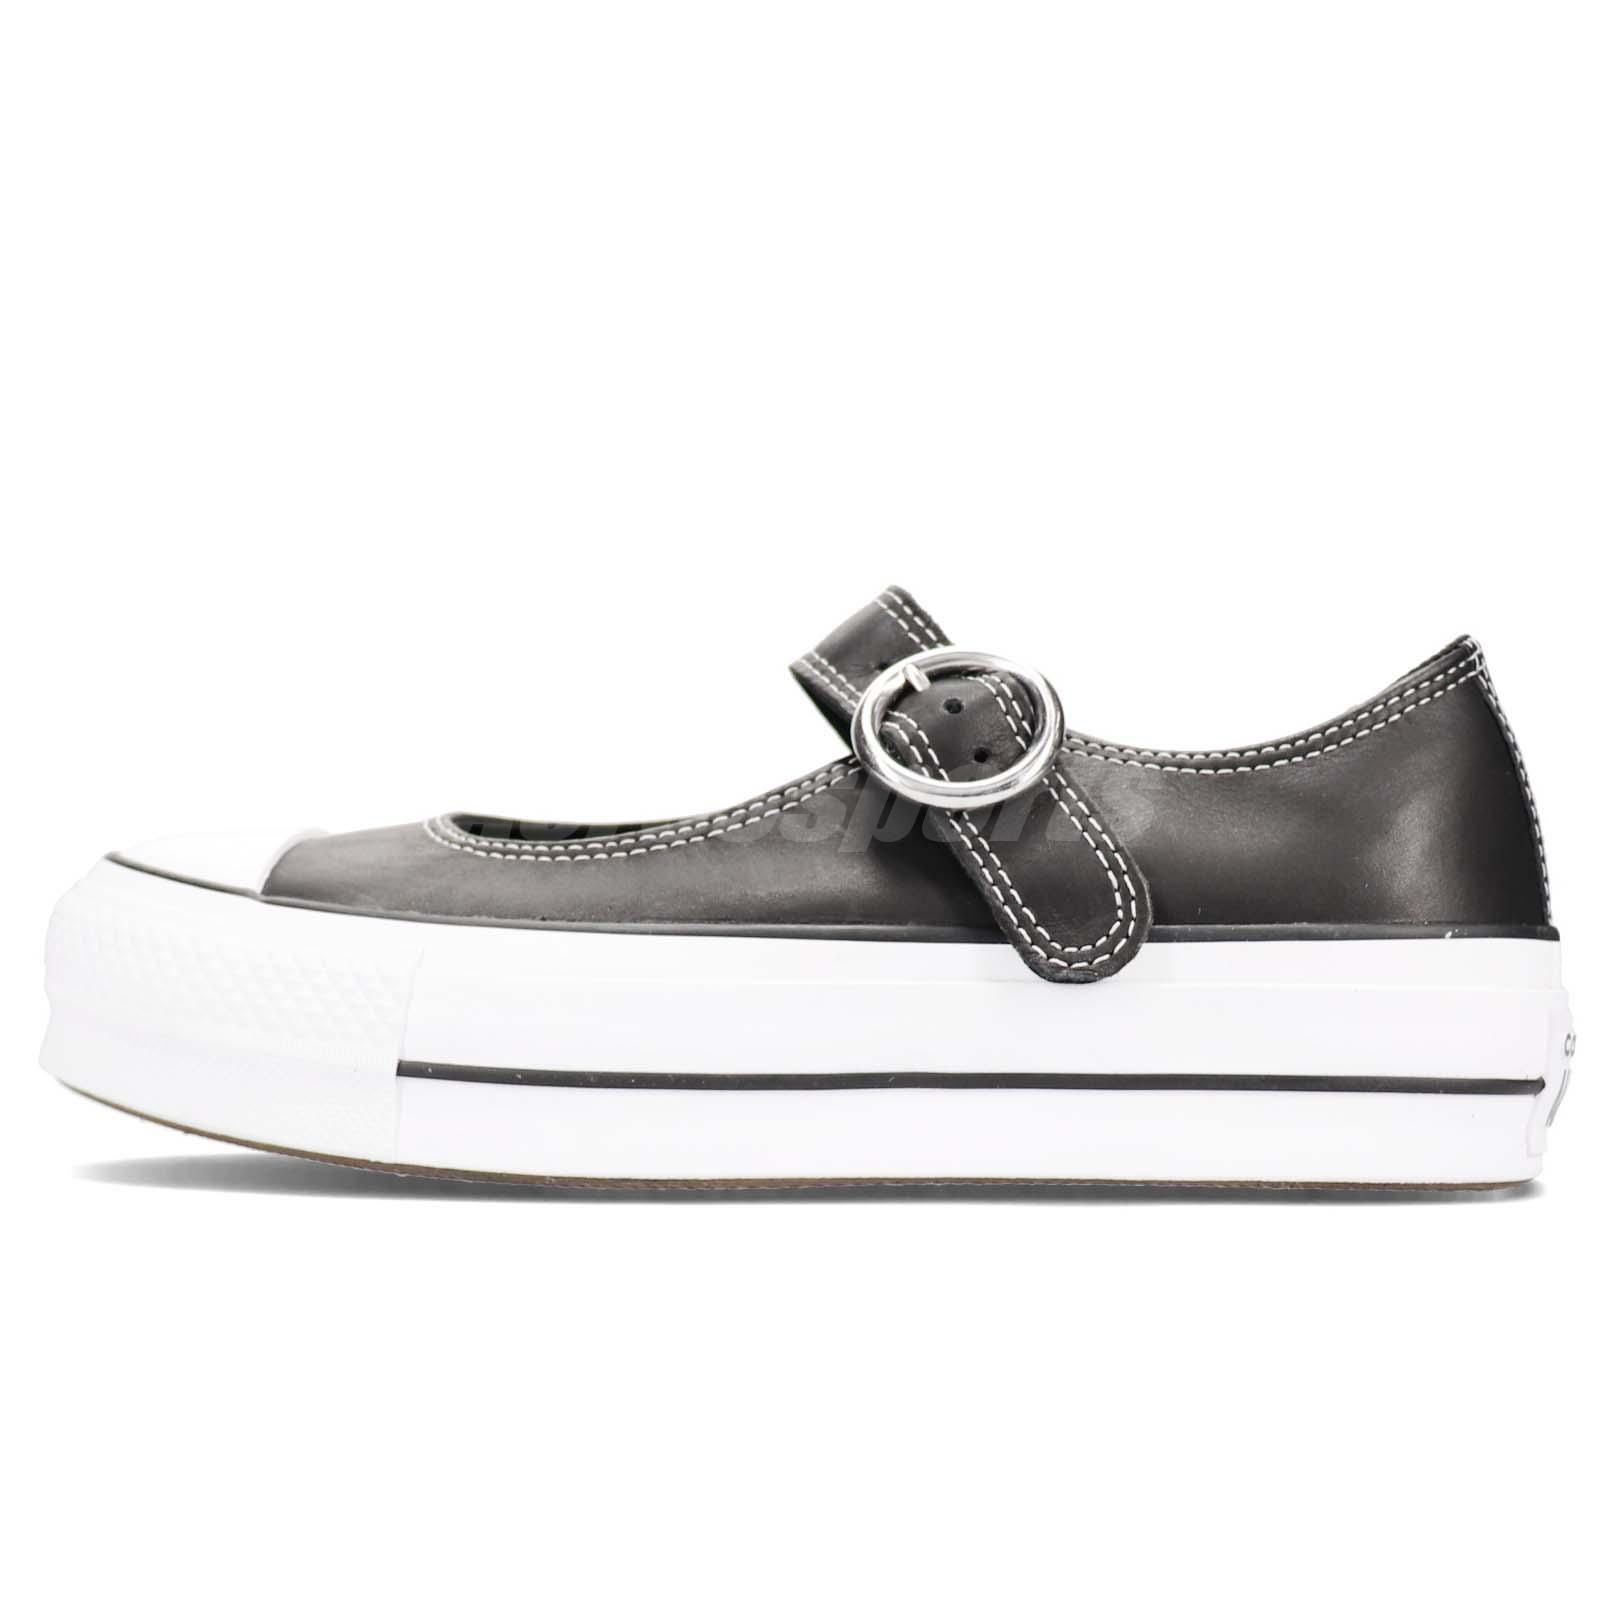 317374fca20 Converse Chuck Taylor All Star Mary Jane Black White Women Slip On Shoes  563501C